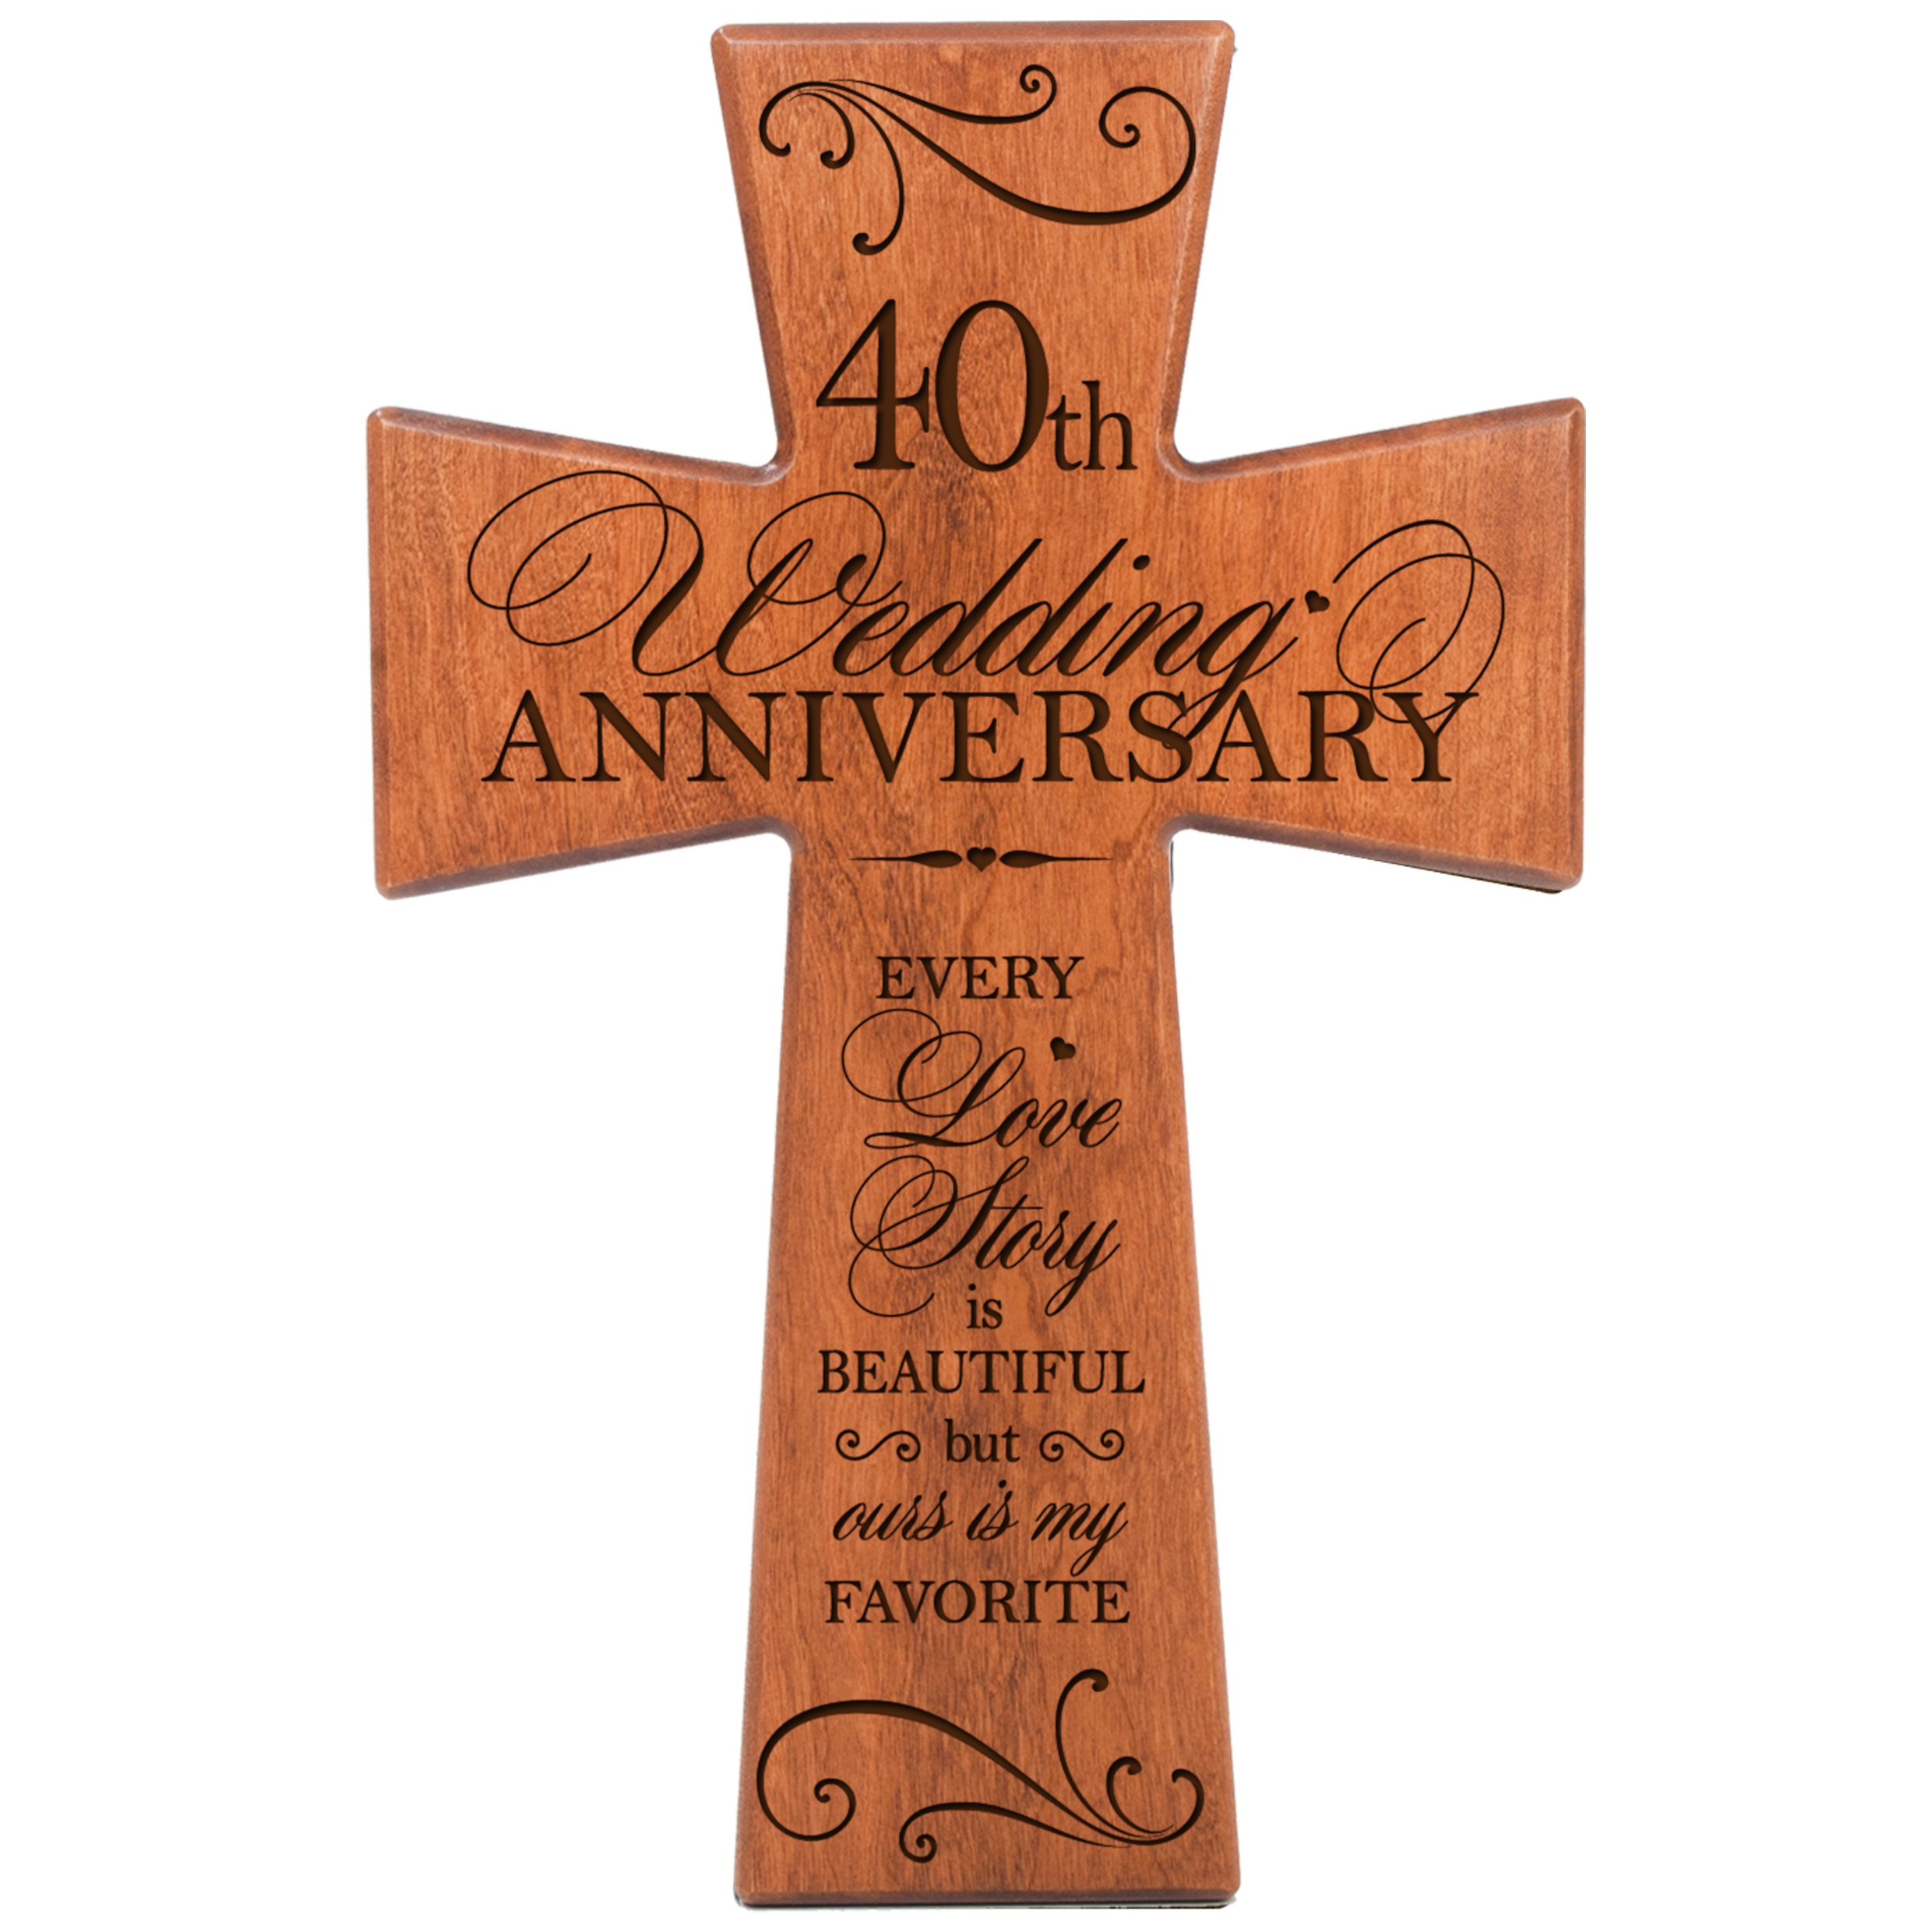 40th Wedding Anniversary Gift for Couple Cherry Wood Wall Cross, 40th Anniversary Gifts for Her